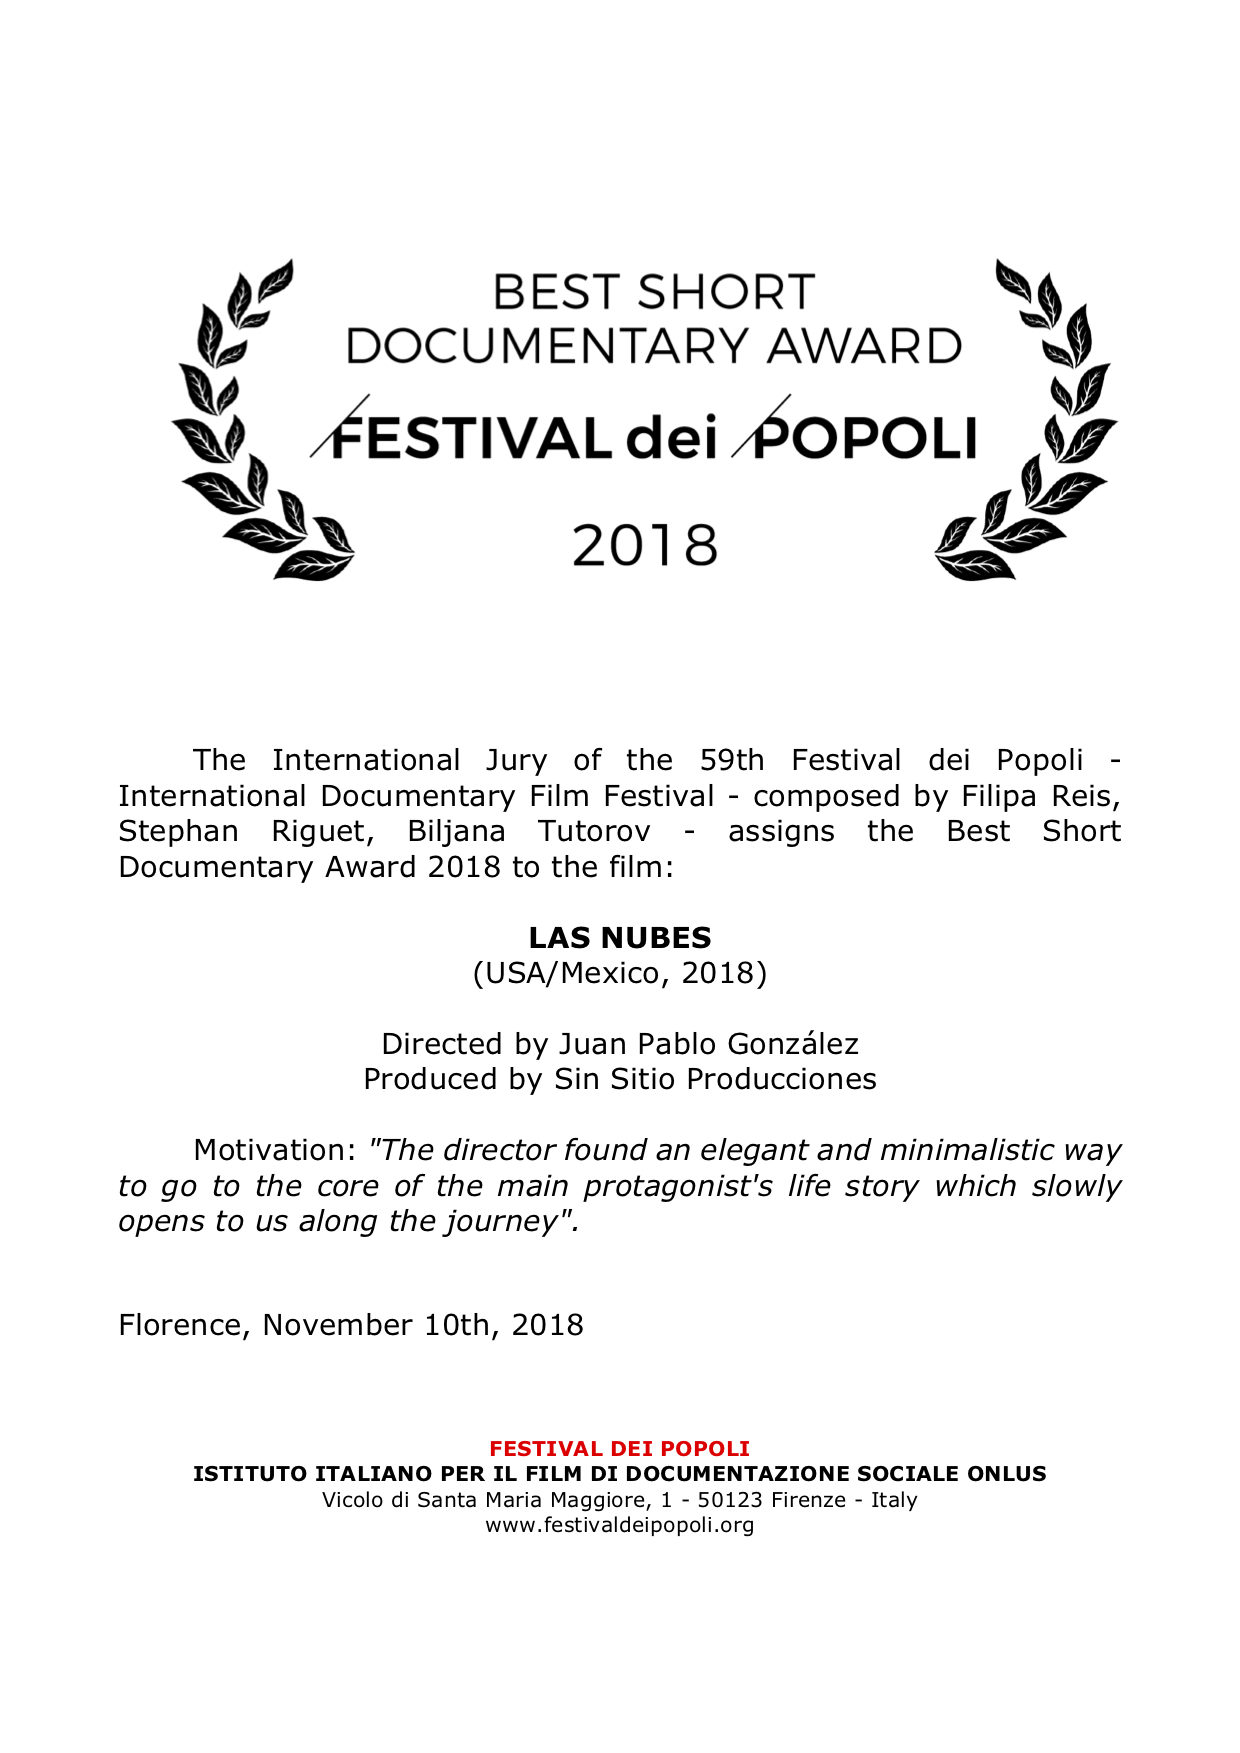 Best Short Documentary Award to LAS NUBES.jpg